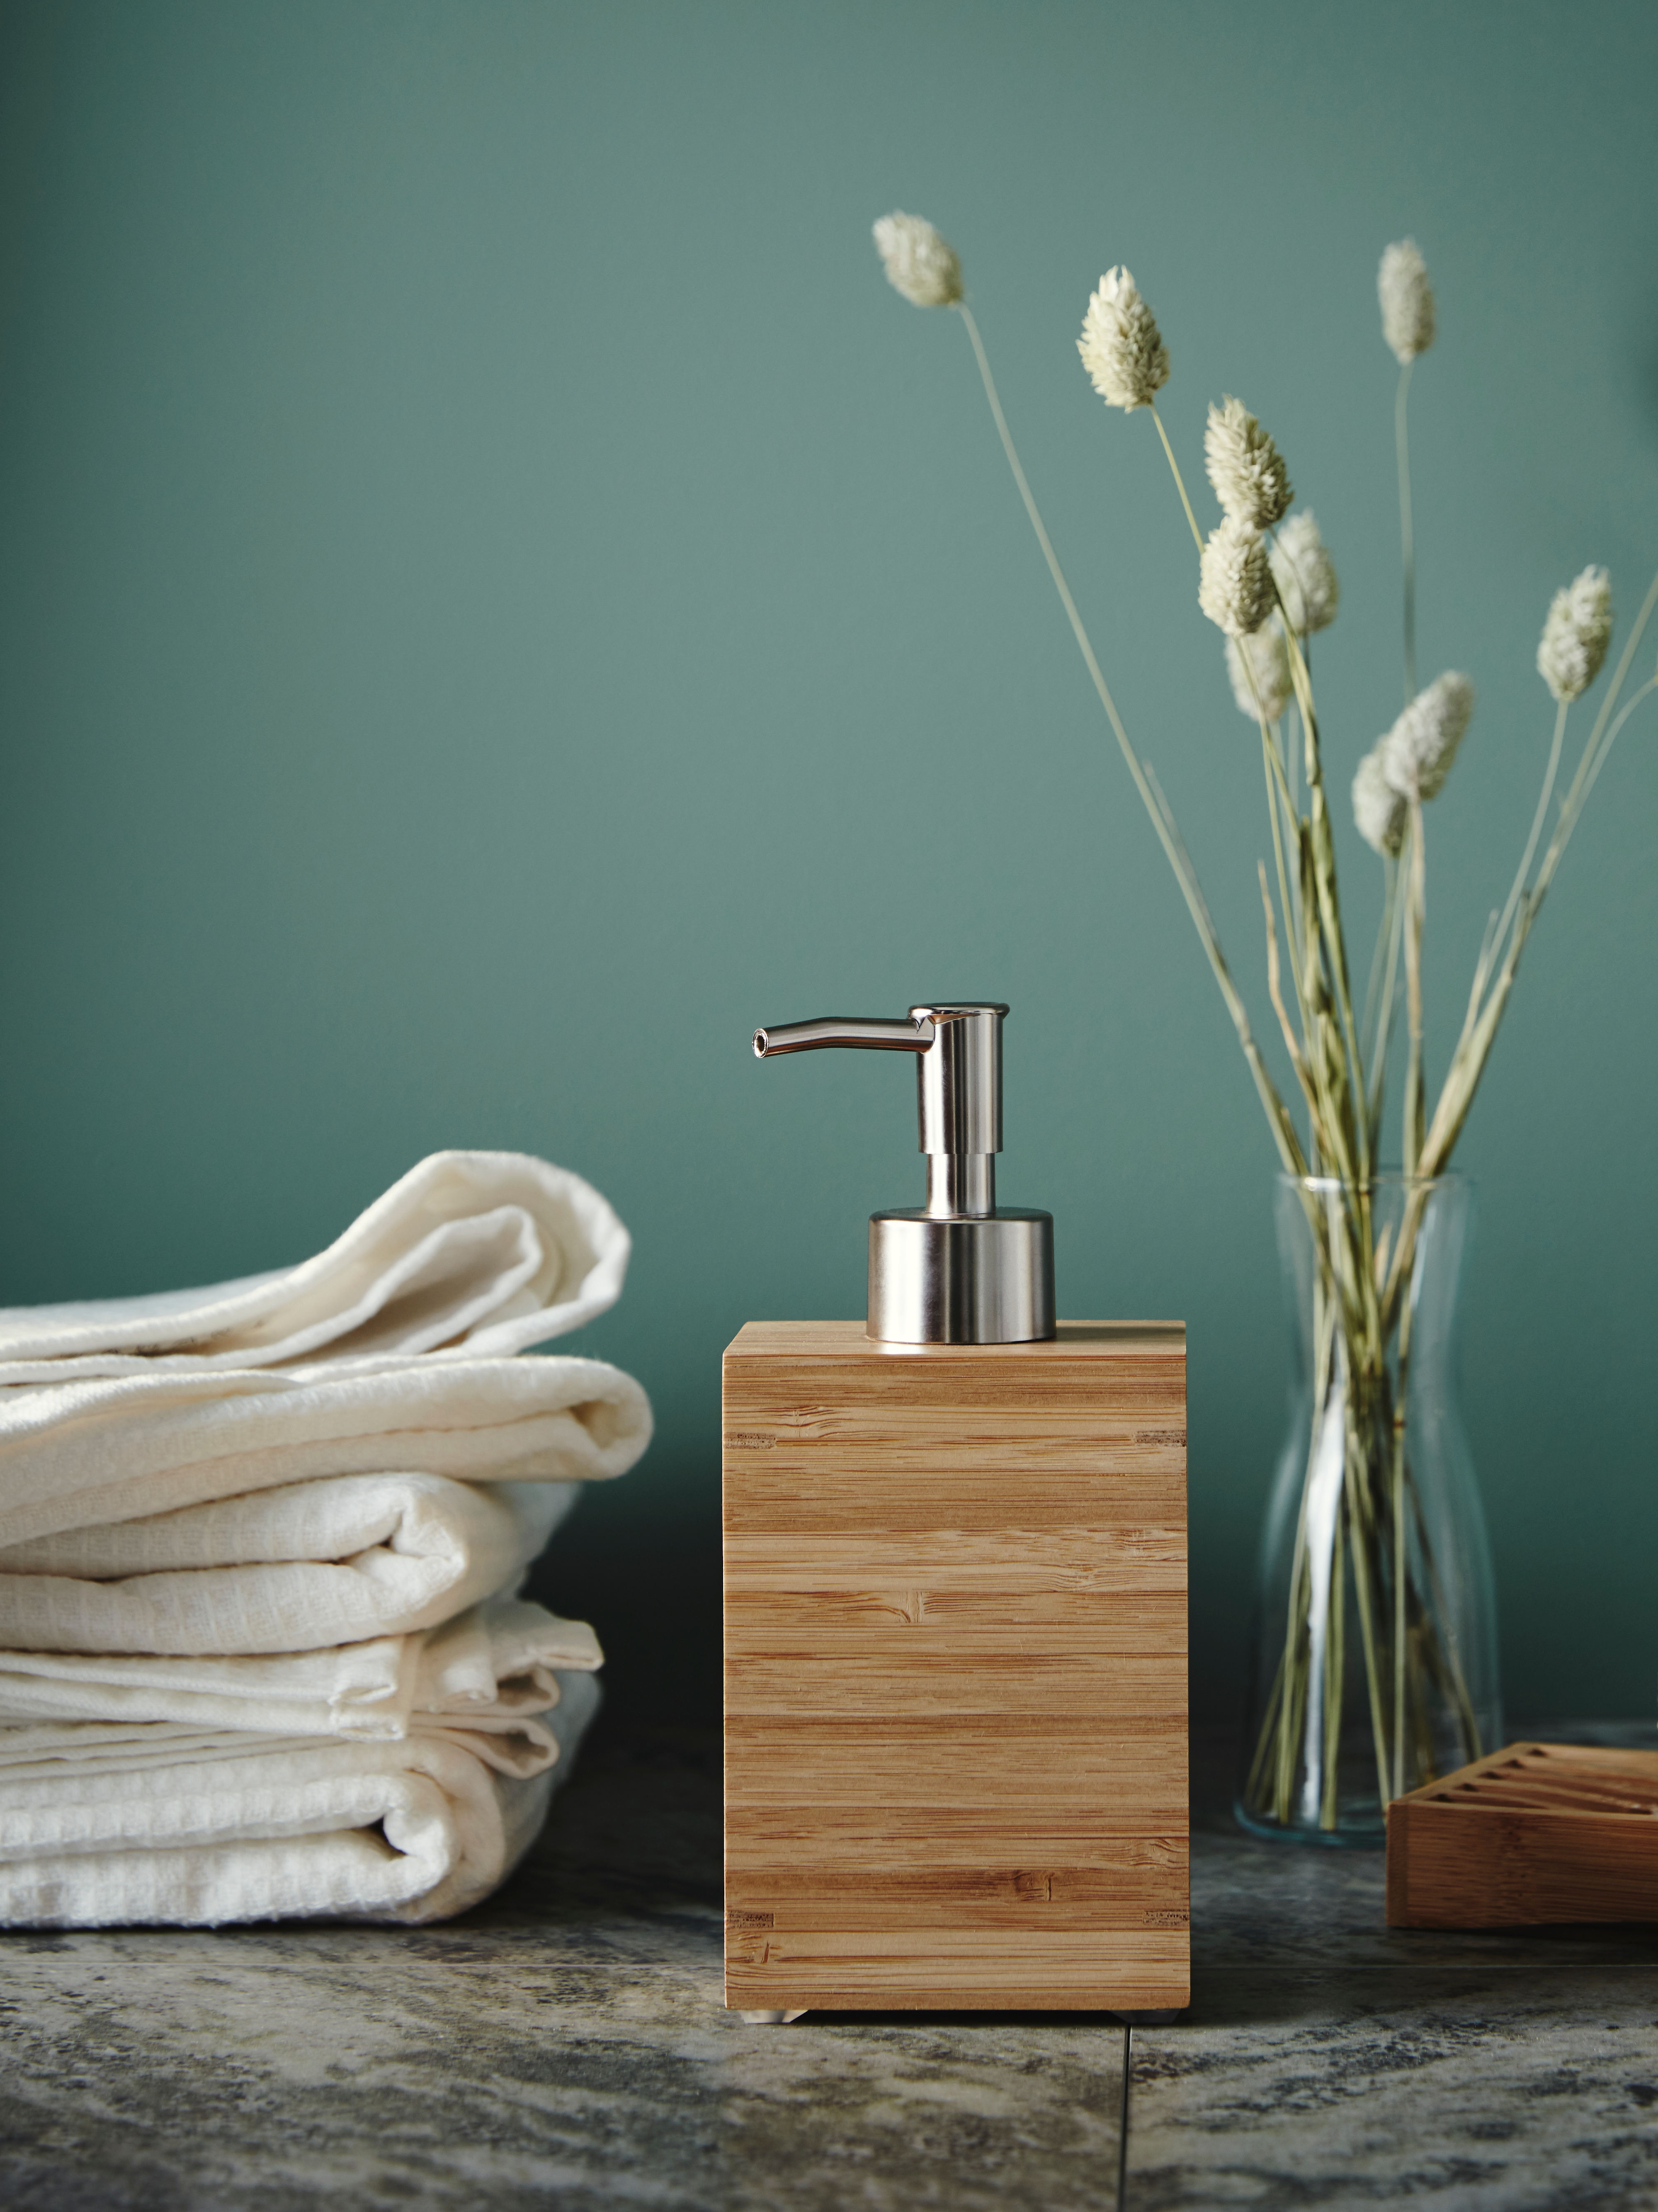 A rectangular, bamboo DRAGAN soap dispenser is next to a matching soap dish and a vase of dried flowers on a tiled surface.